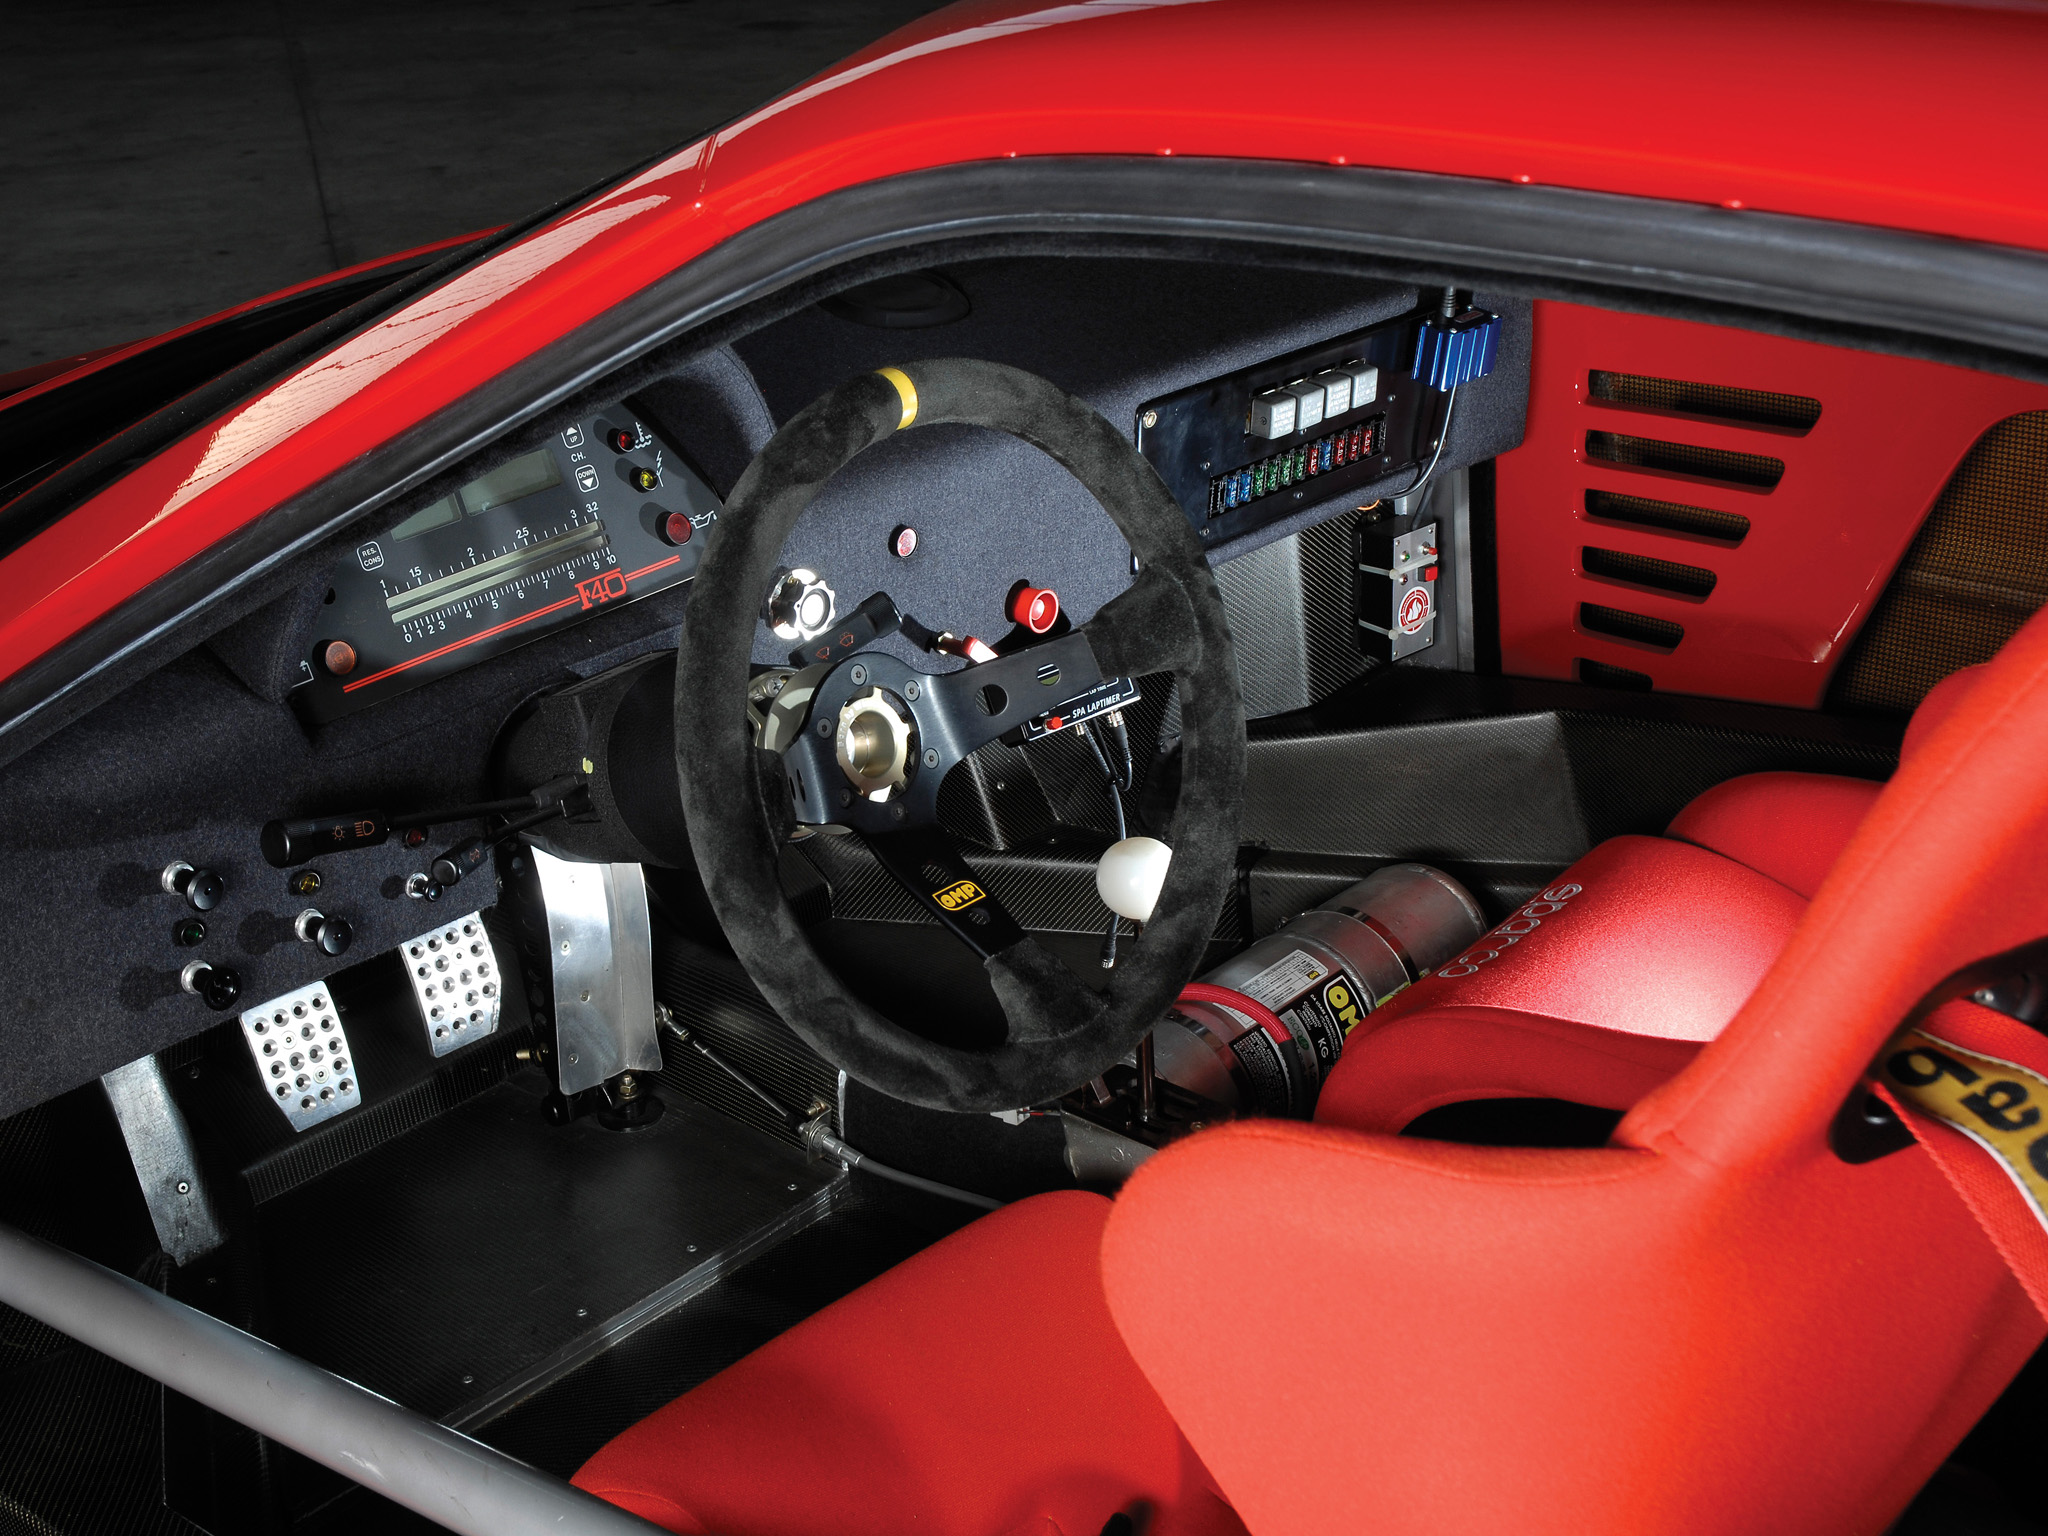 1988 ferrari f40 classic supercar race racing interior g wallpaper 2048x1536 143326. Black Bedroom Furniture Sets. Home Design Ideas